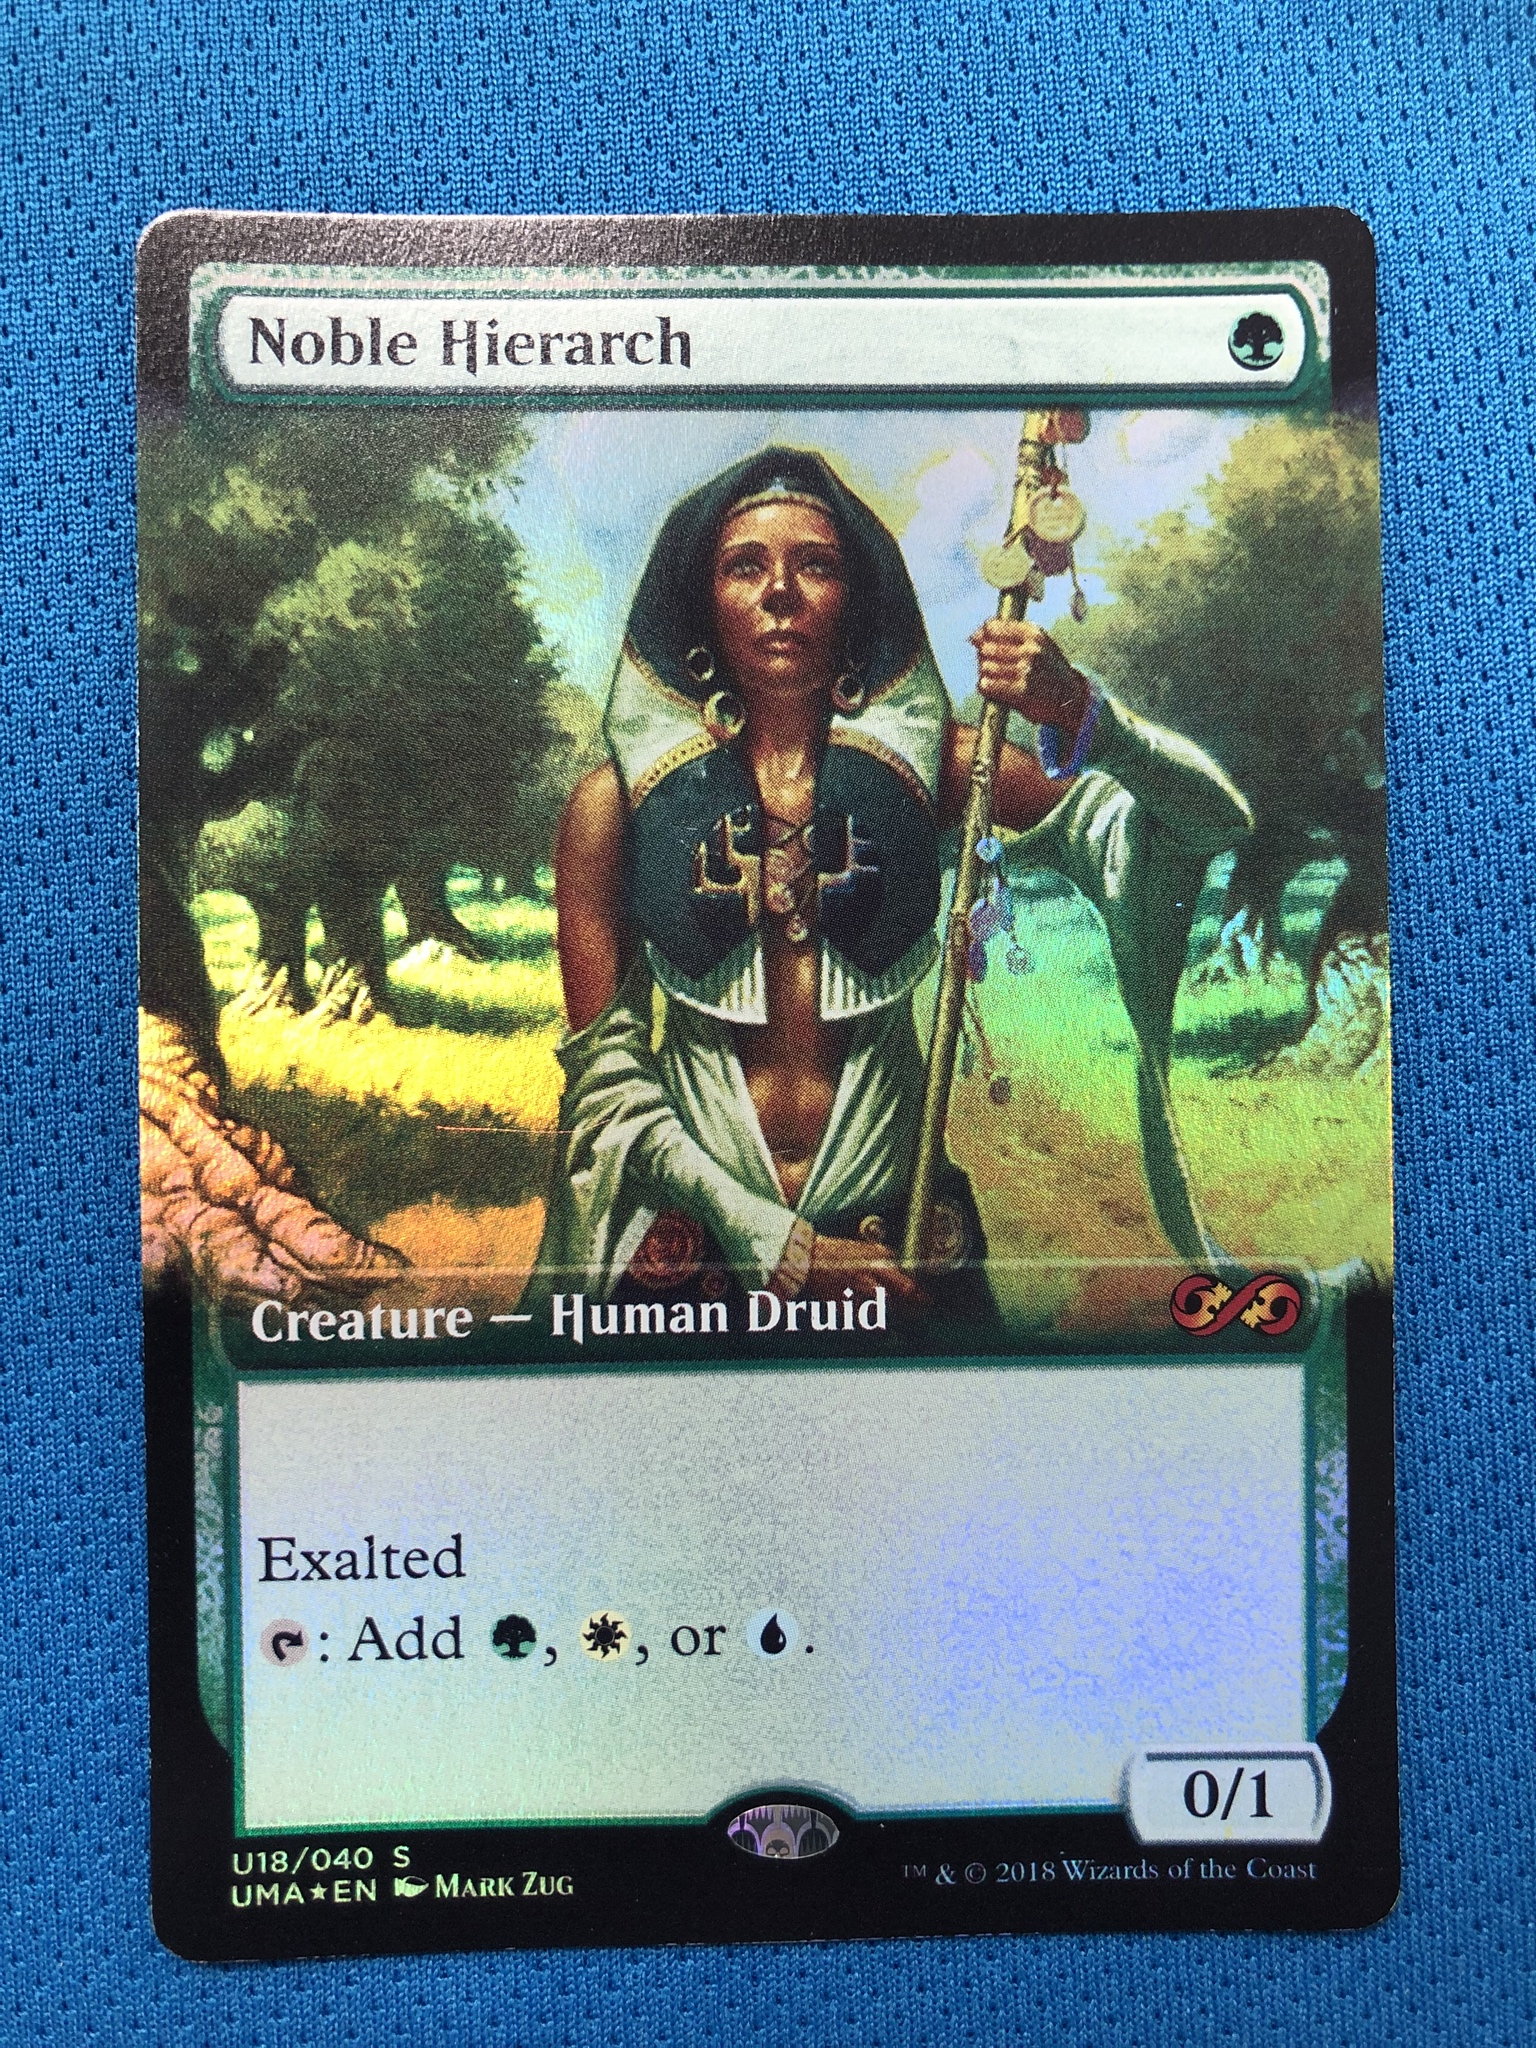 Noble Hierarch PUMA Foil Magician ProxyKing 8.0 VIP The Proxy Cards To Gathering Every Single Mg Card.